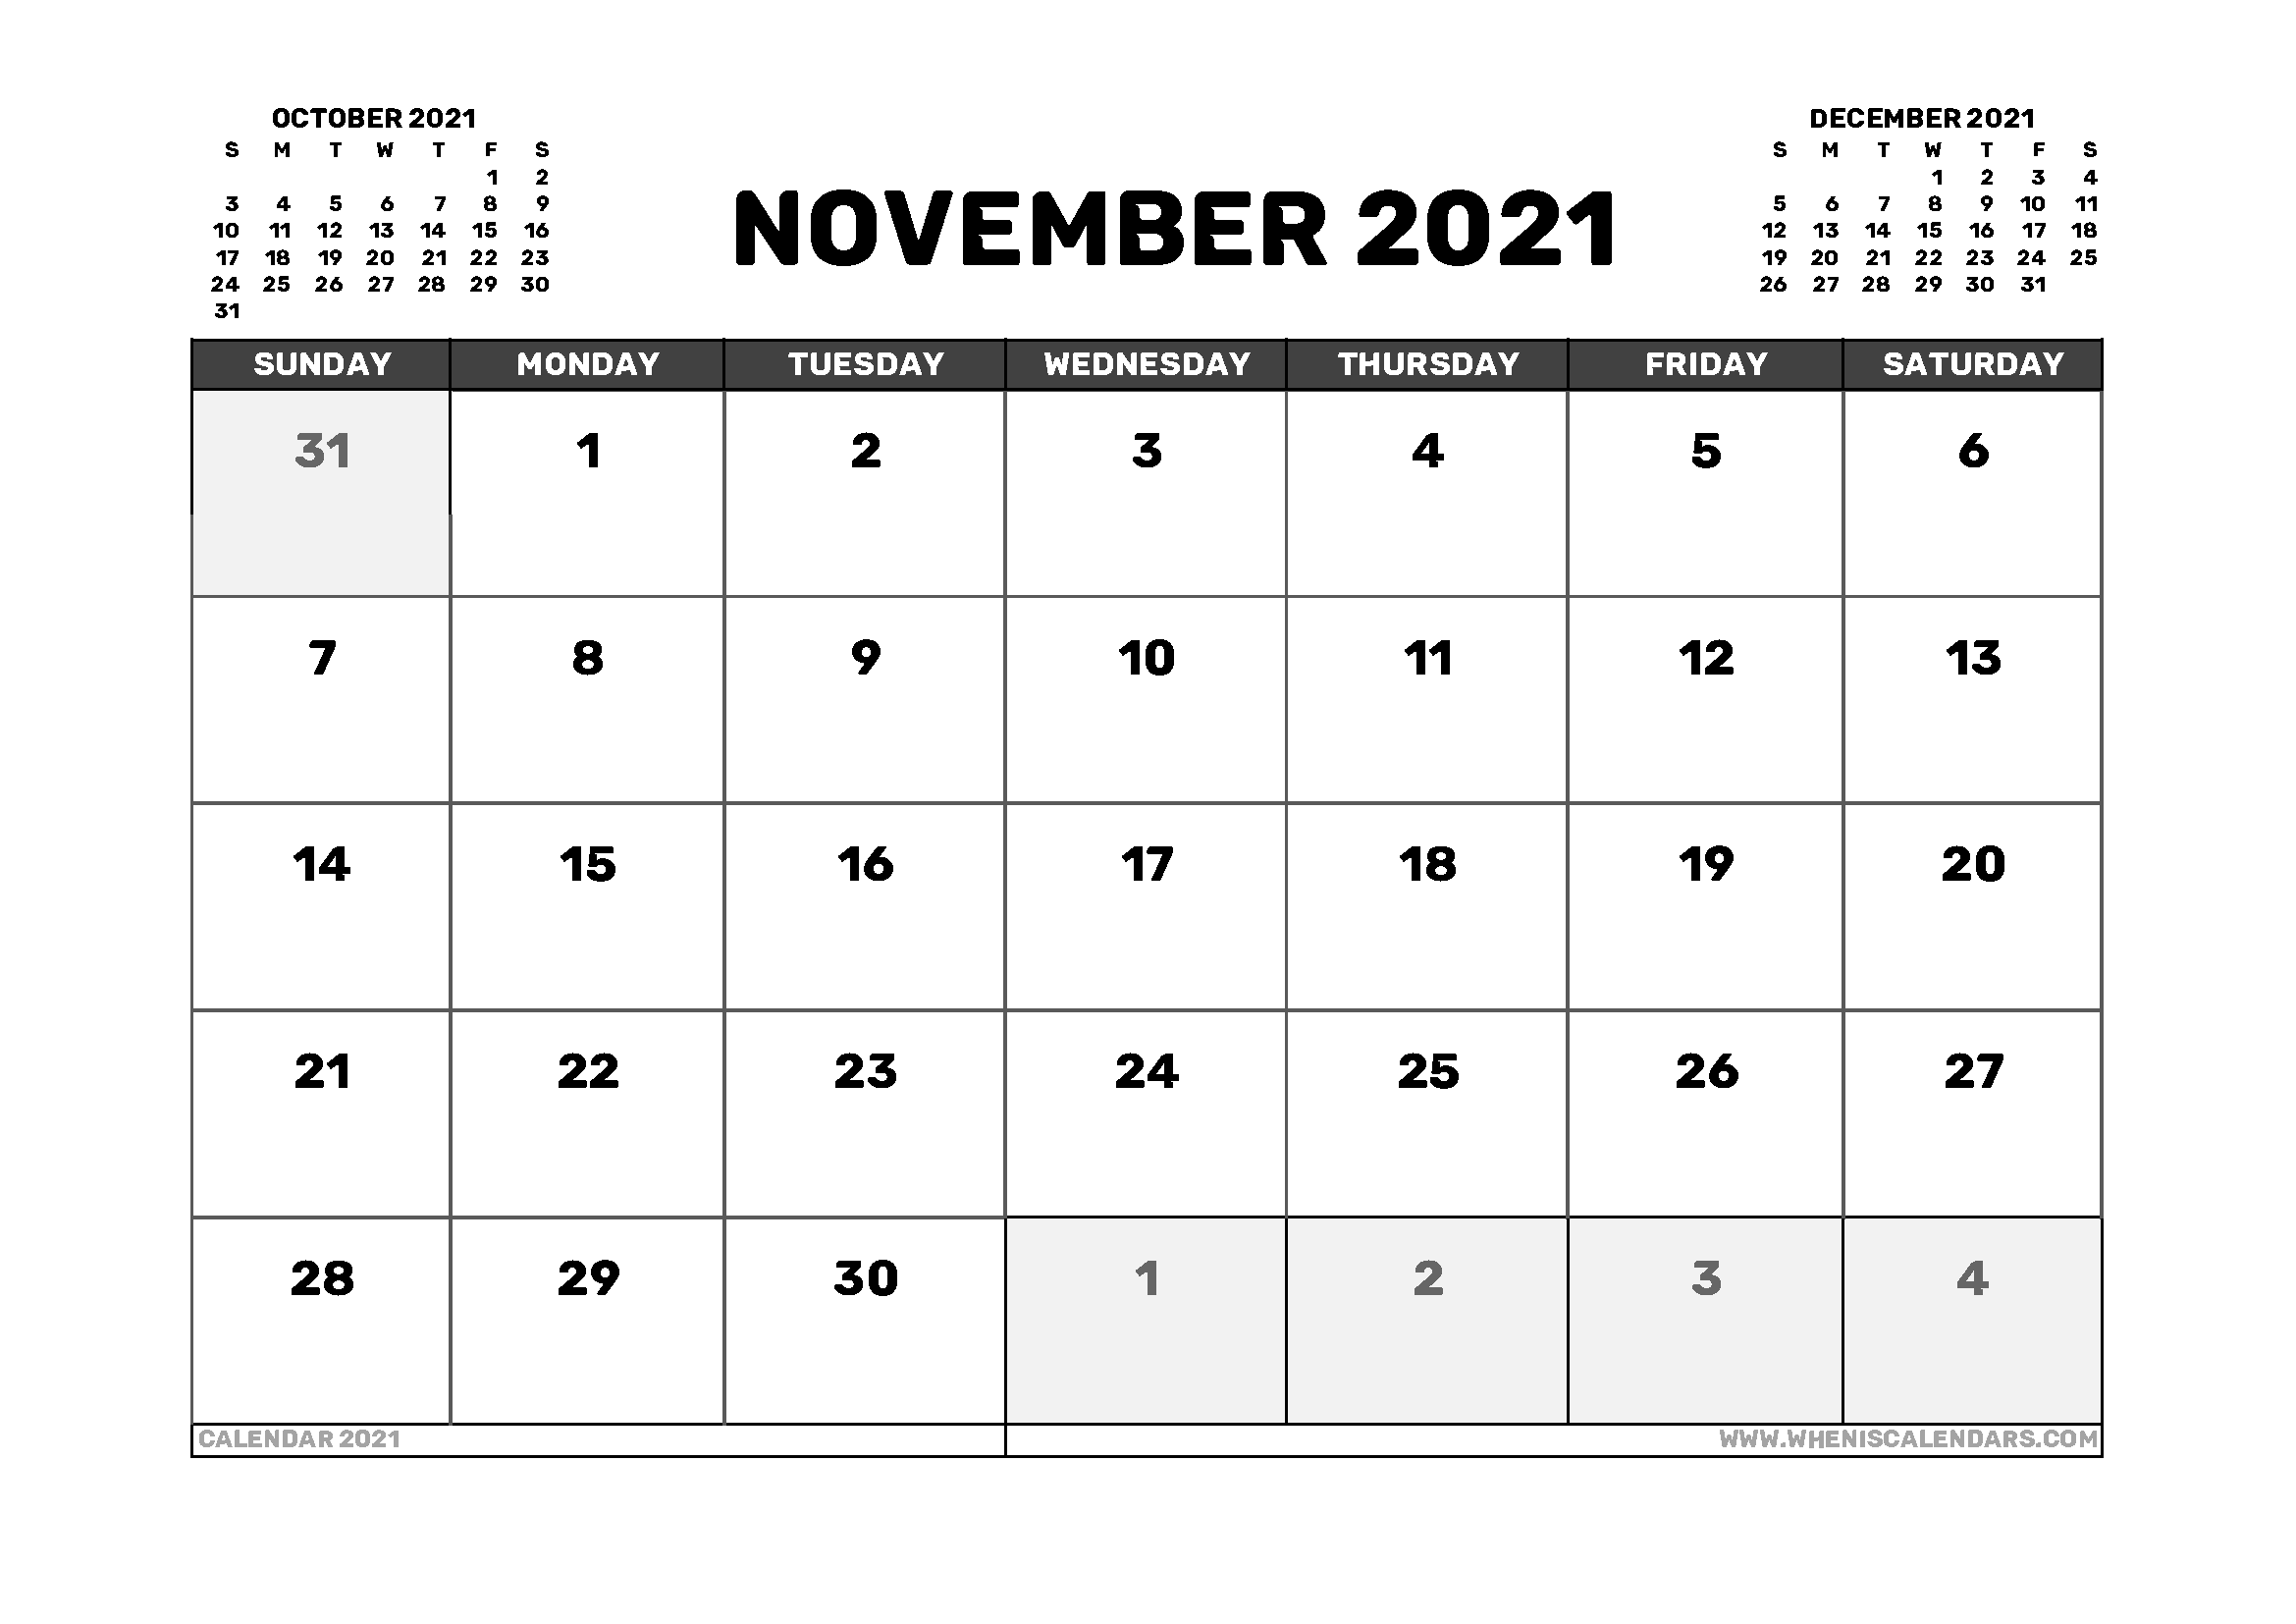 November 2021 Calendar Australia with Holidays